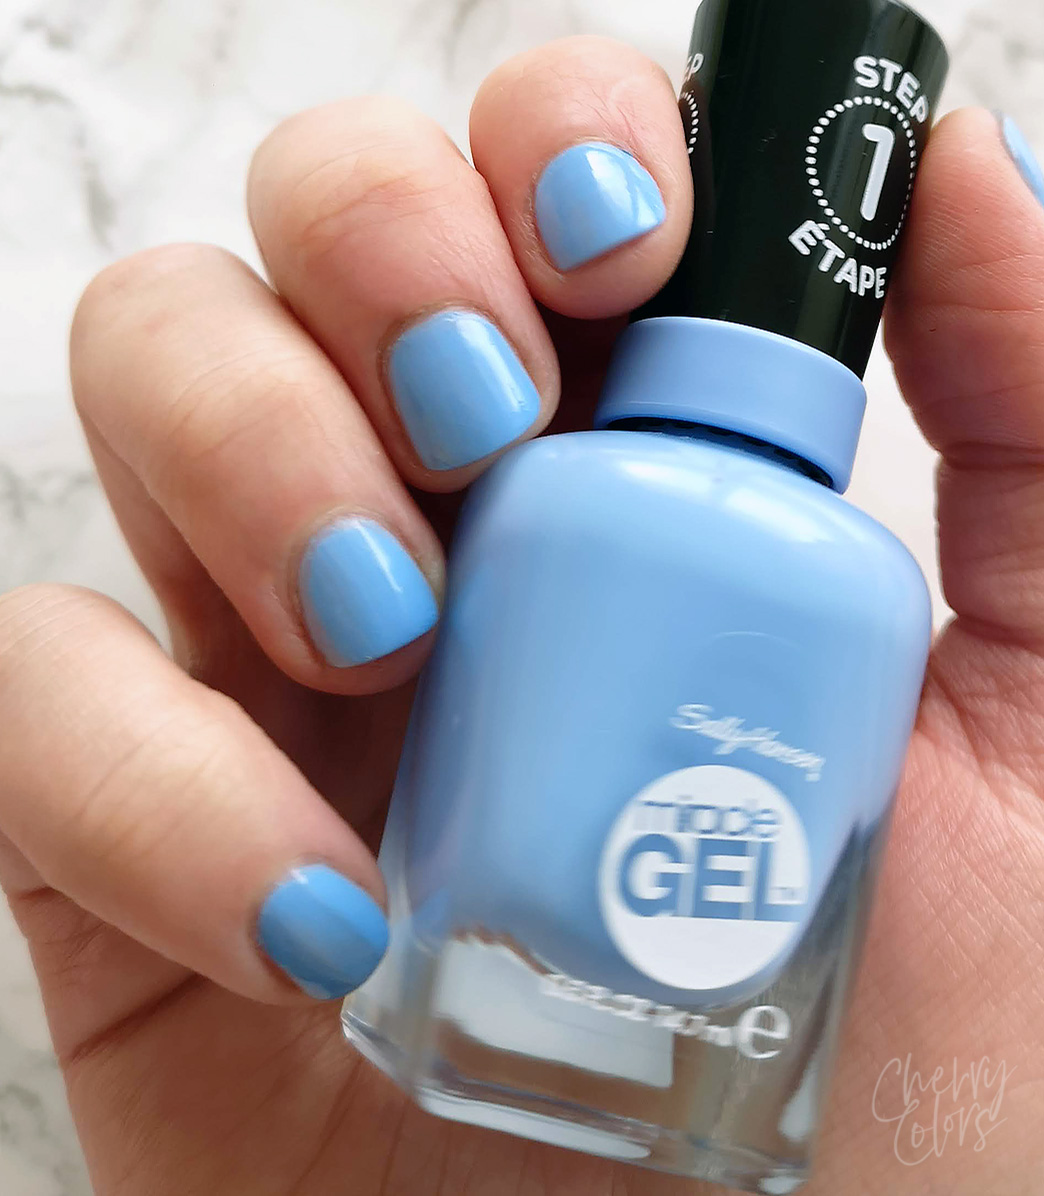 Sally Hansen GEL Sugar Fix